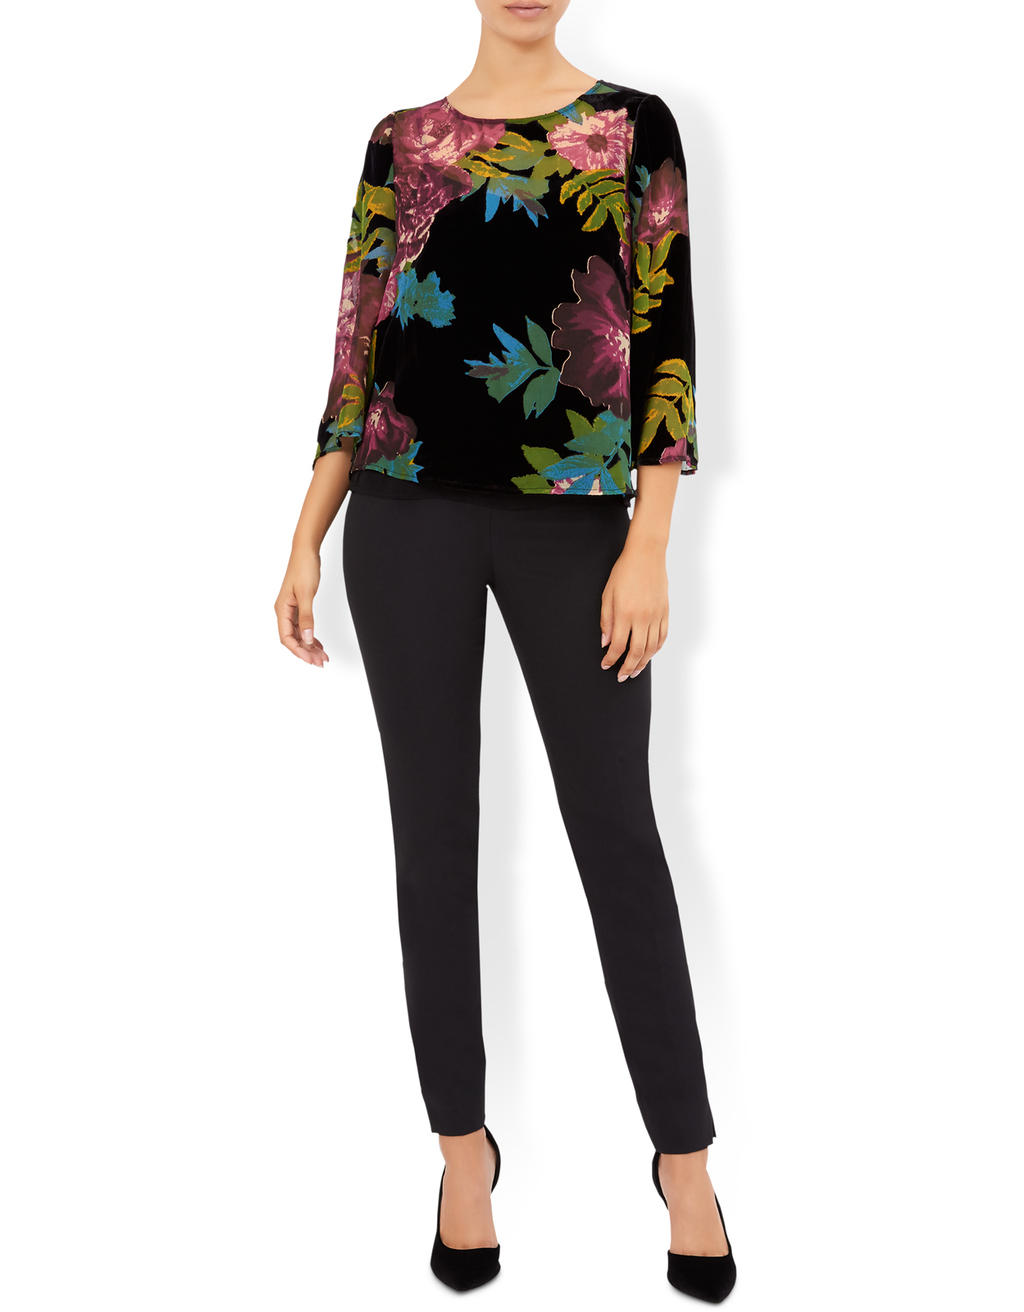 Mable Floral Top - neckline: round neck; secondary colour: purple; predominant colour: black; occasions: casual, creative work; length: standard; style: top; fibres: viscose/rayon - 100%; fit: body skimming; sleeve length: 3/4 length; sleeve style: standard; pattern type: fabric; pattern size: standard; pattern: florals; texture group: jersey - stretchy/drapey; multicoloured: multicoloured; season: a/w 2016